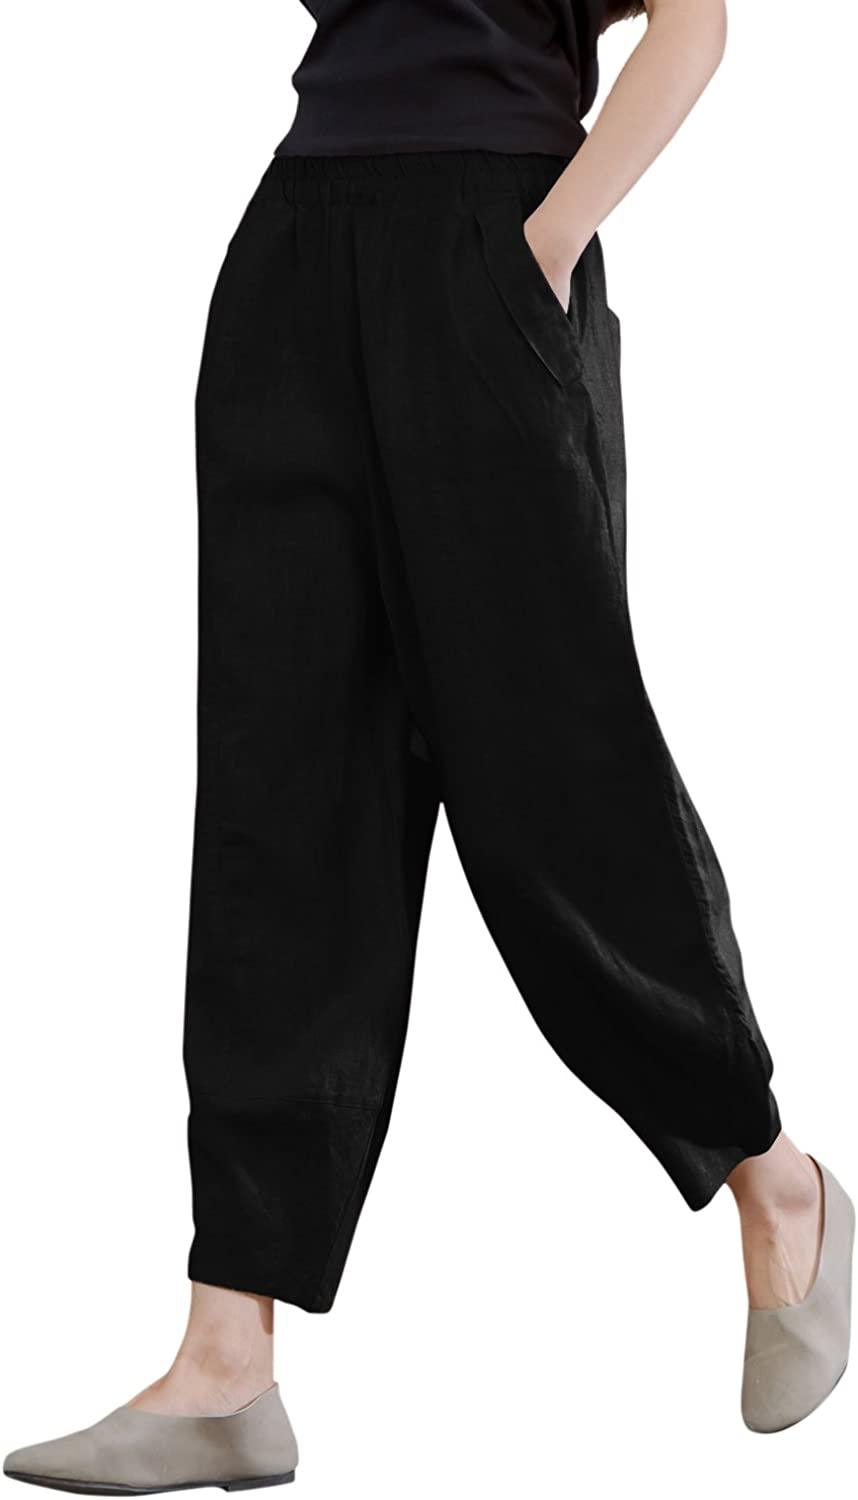 IXIMO Women's 100% Linen Pants Relax Fit Lantern Cropped TaperedPants Trousers with Elastic Waist